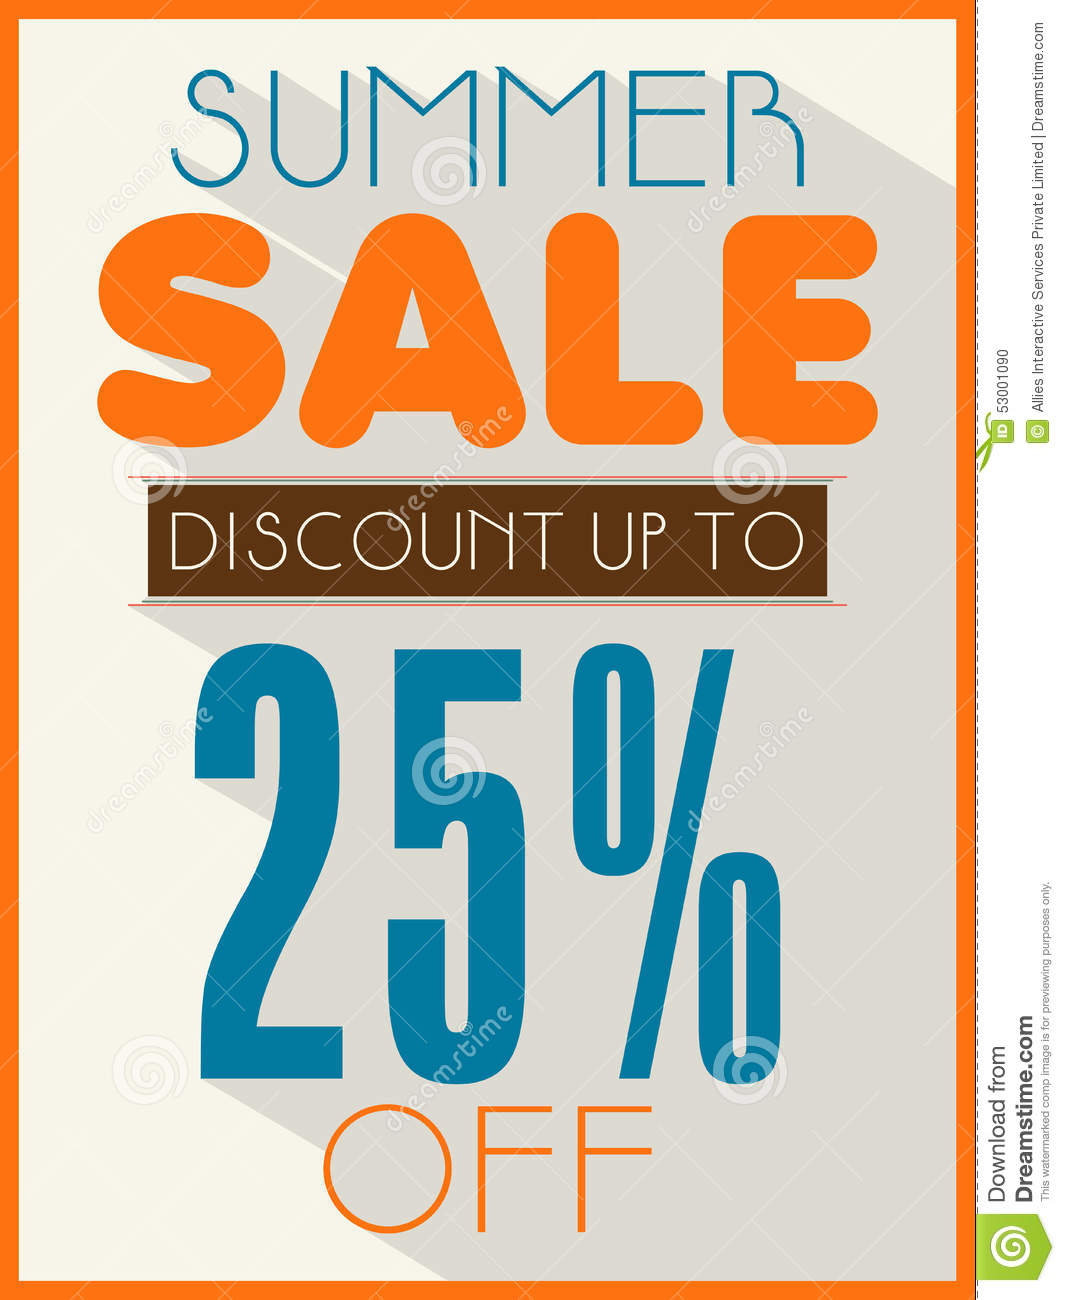 Summer Sale Banner Design | www.imgkid.com - The Image Kid ...